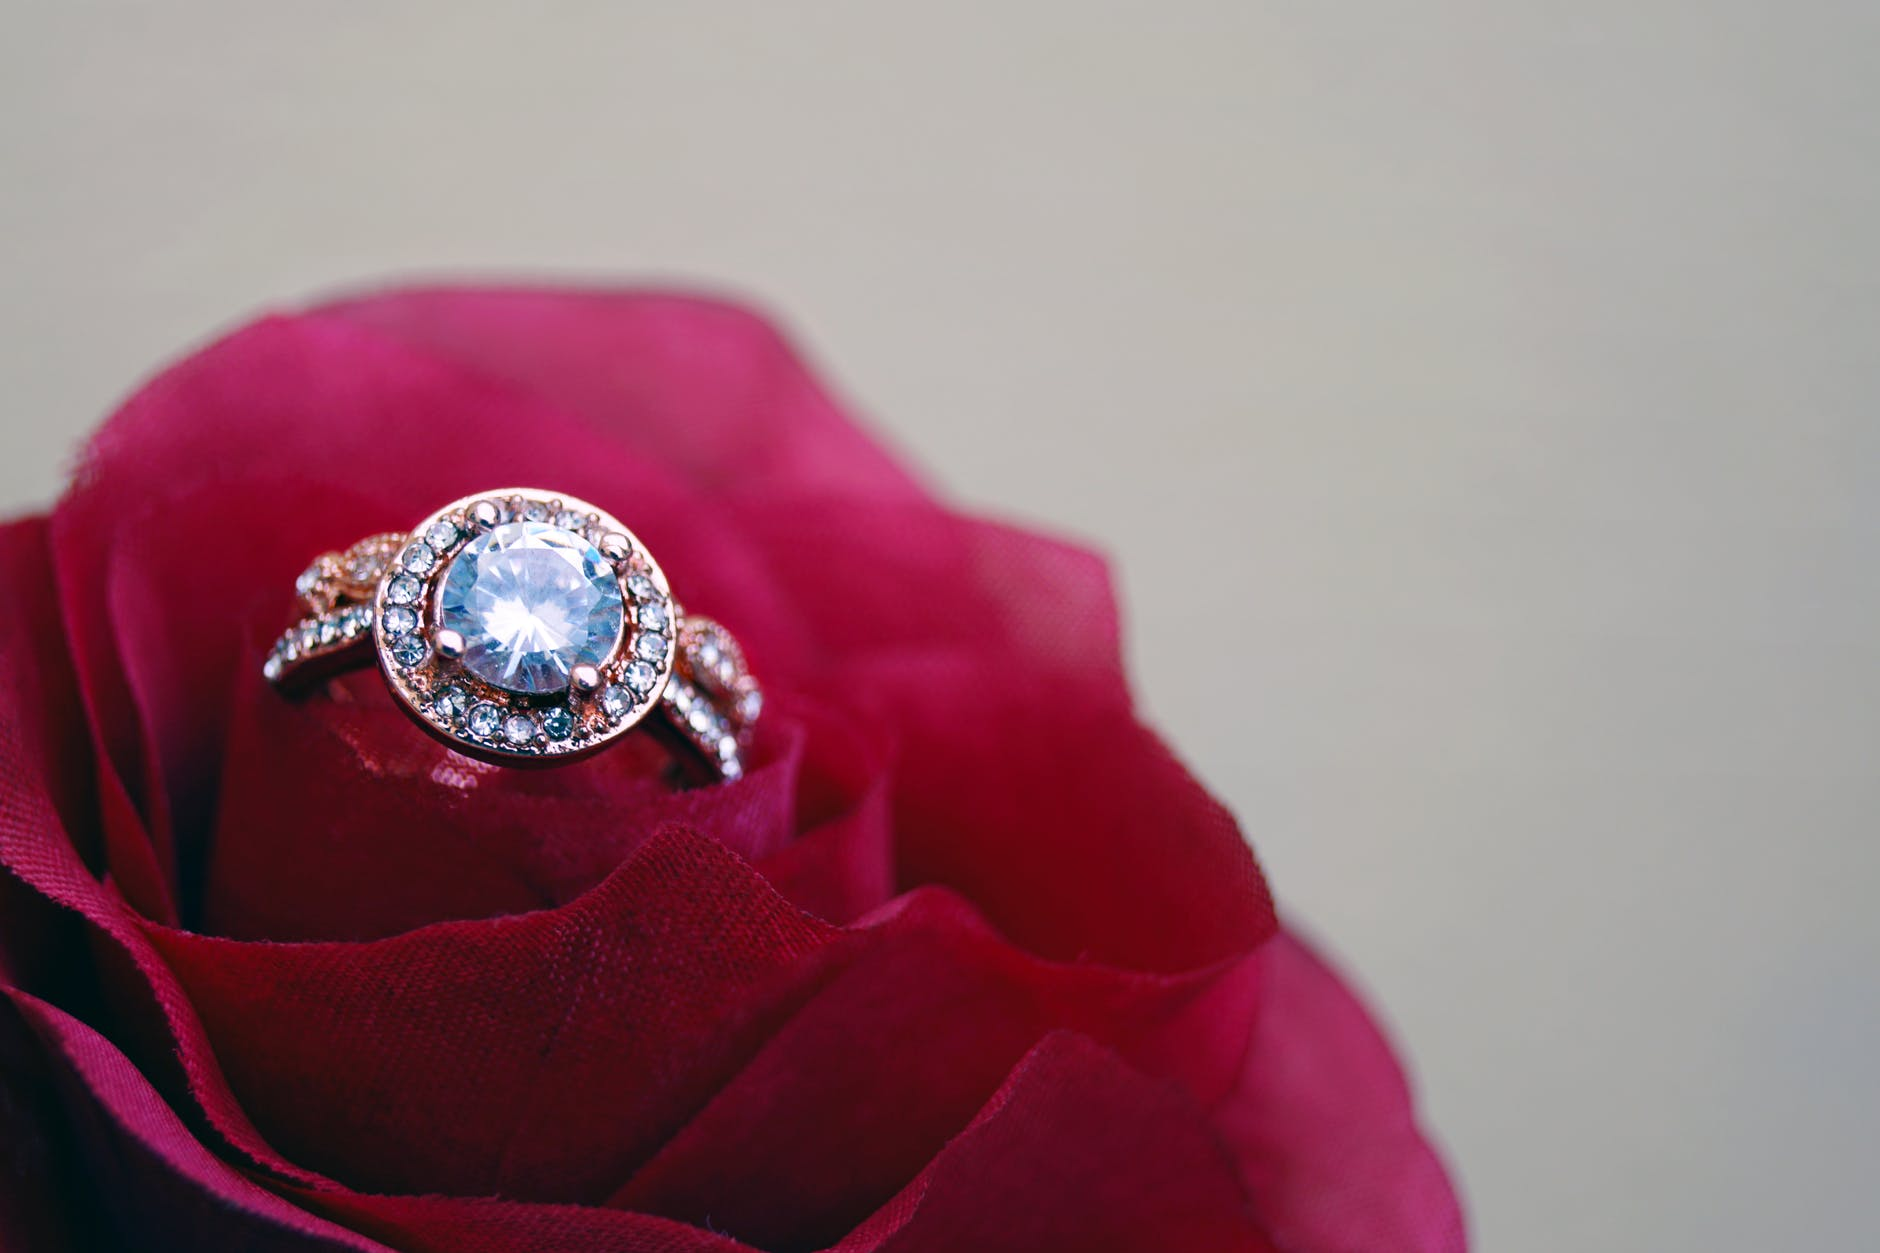 Only two in one thousand diamonds are considered truly colorless.